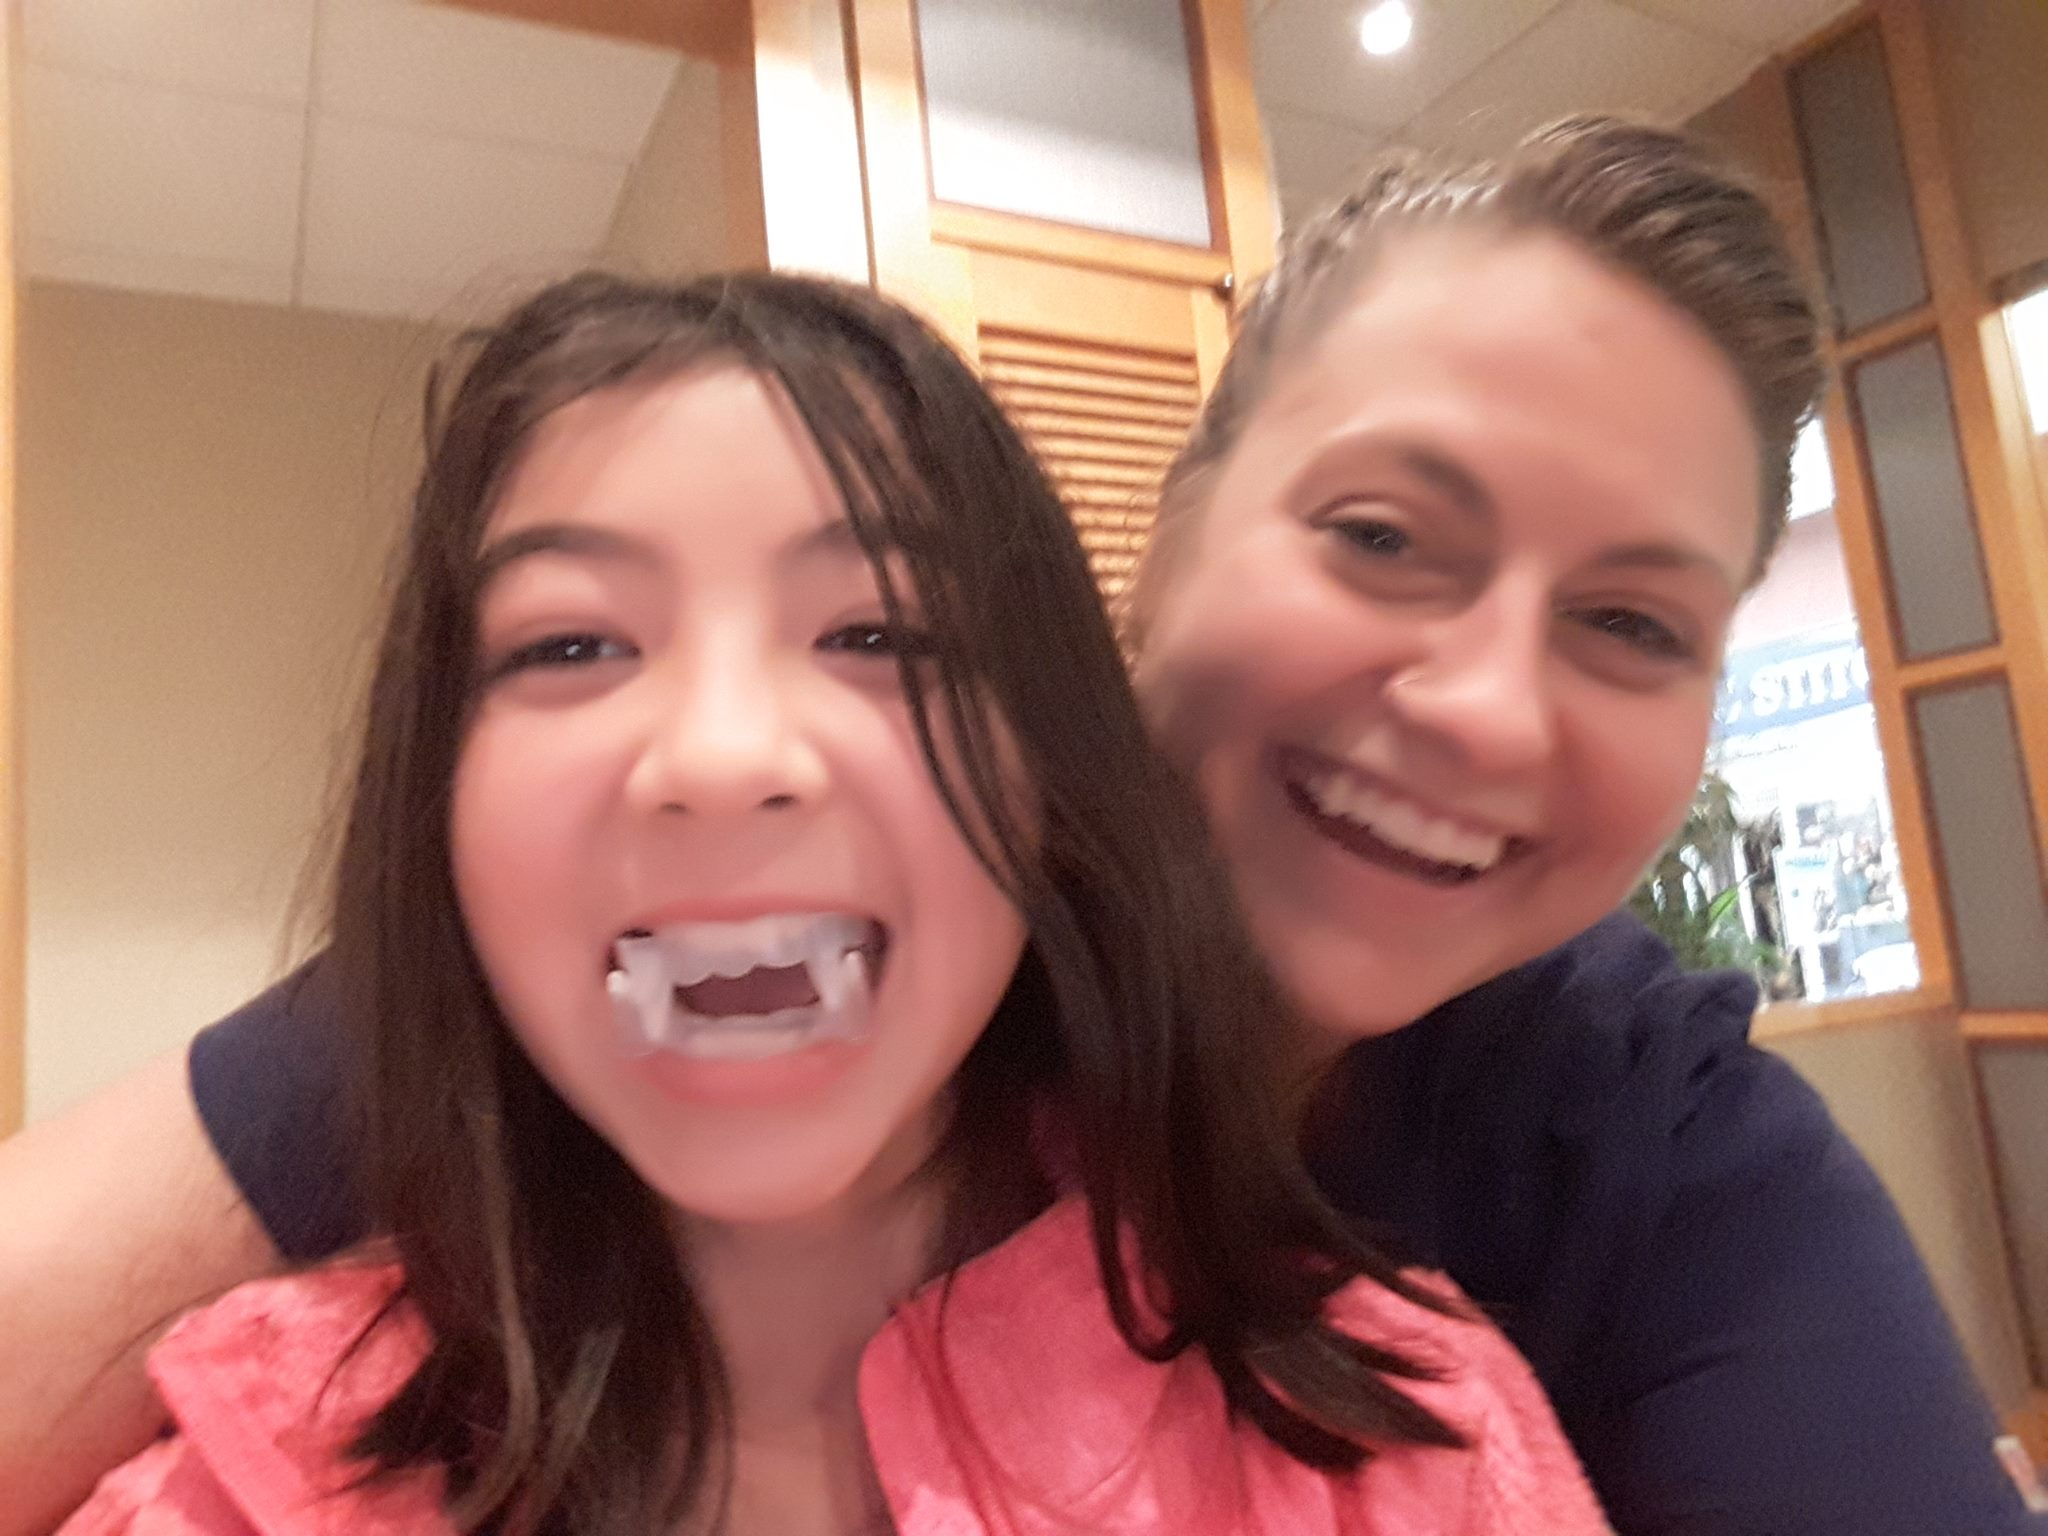 HAPPY HALLOWEEN FAMILY DENTAL CENTRES TEETH CLEANING